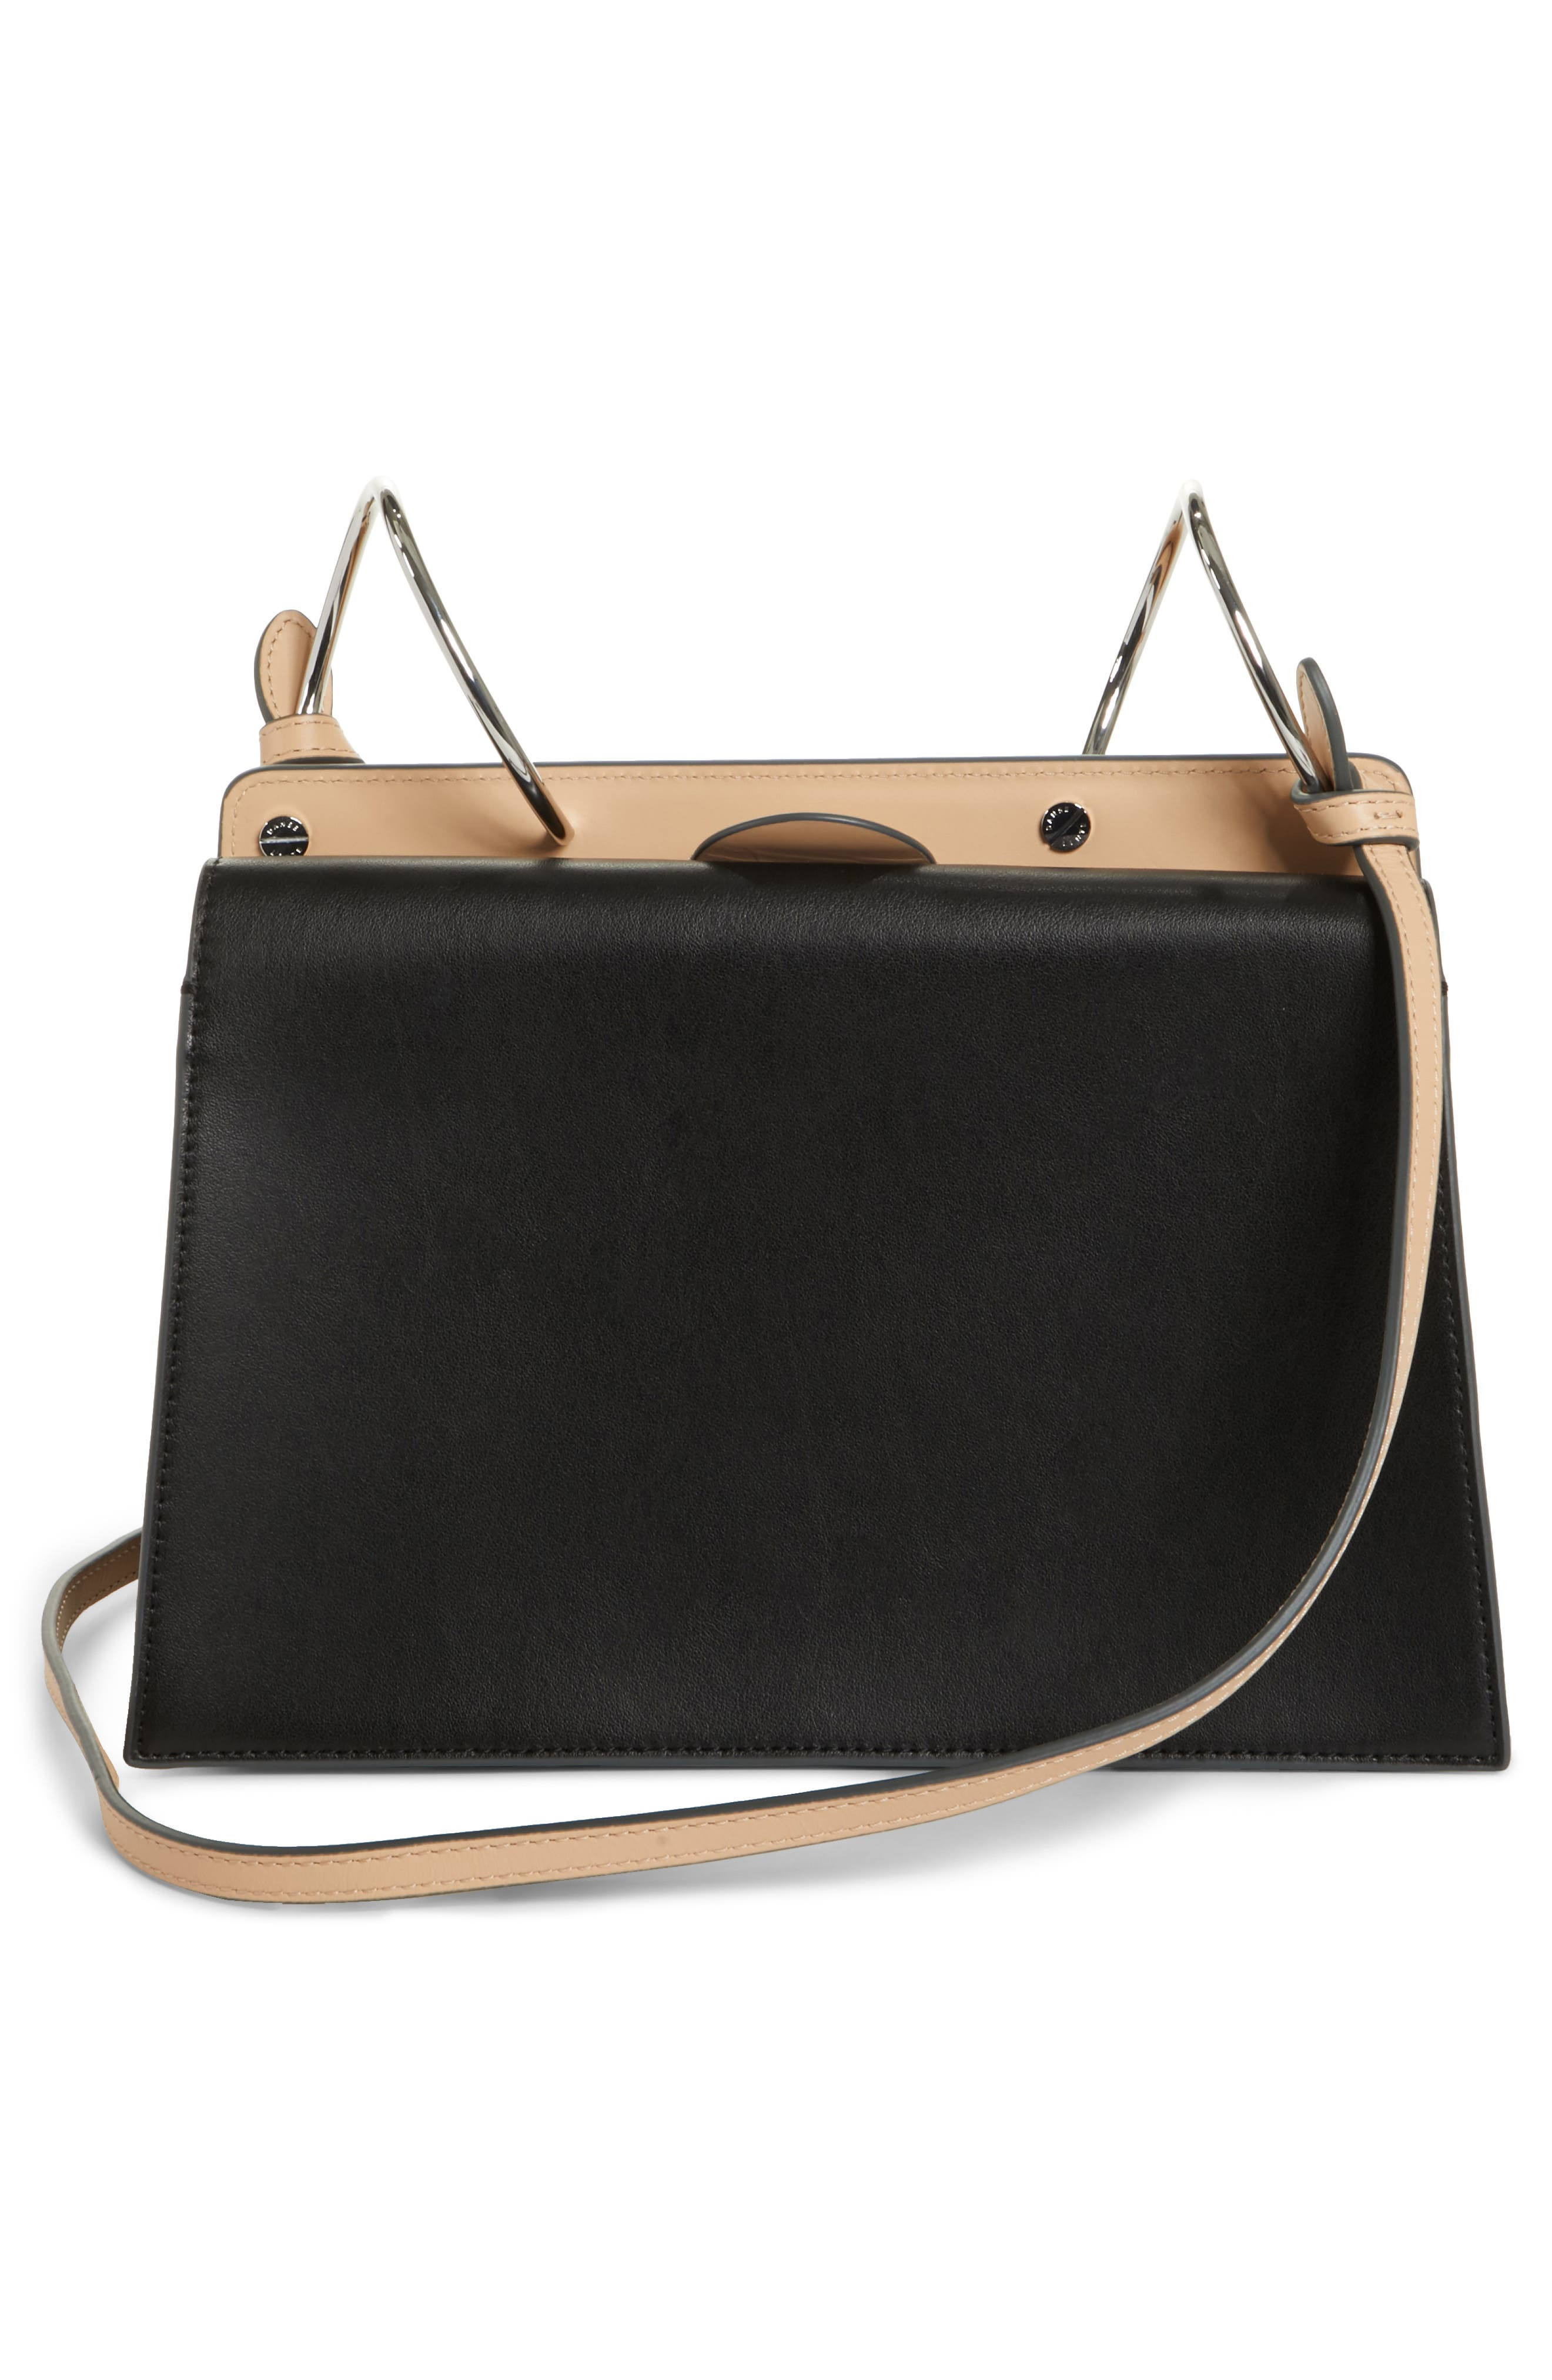 Phoebe Leather Crossbody Bag,                             Alternate thumbnail 3, color,                             NUDE